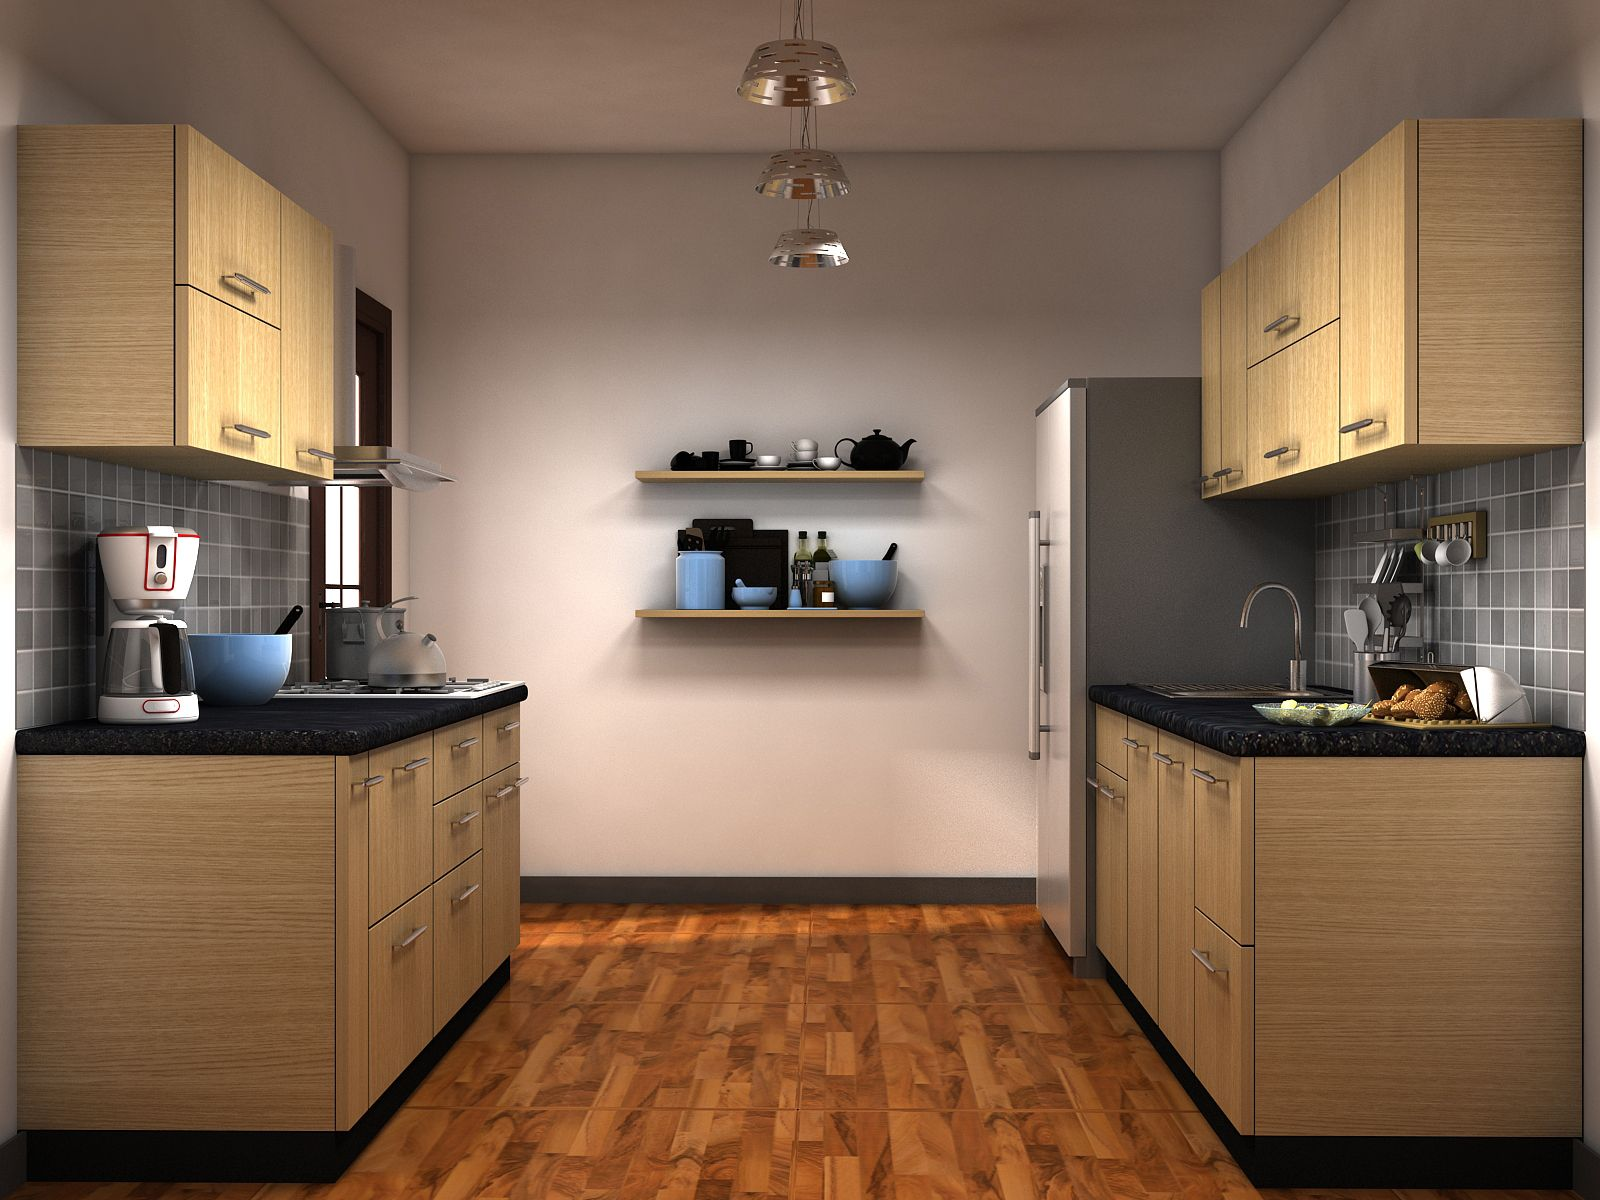 parallel modular kitchen designs kitchen design small on home interior design kitchen id=68304